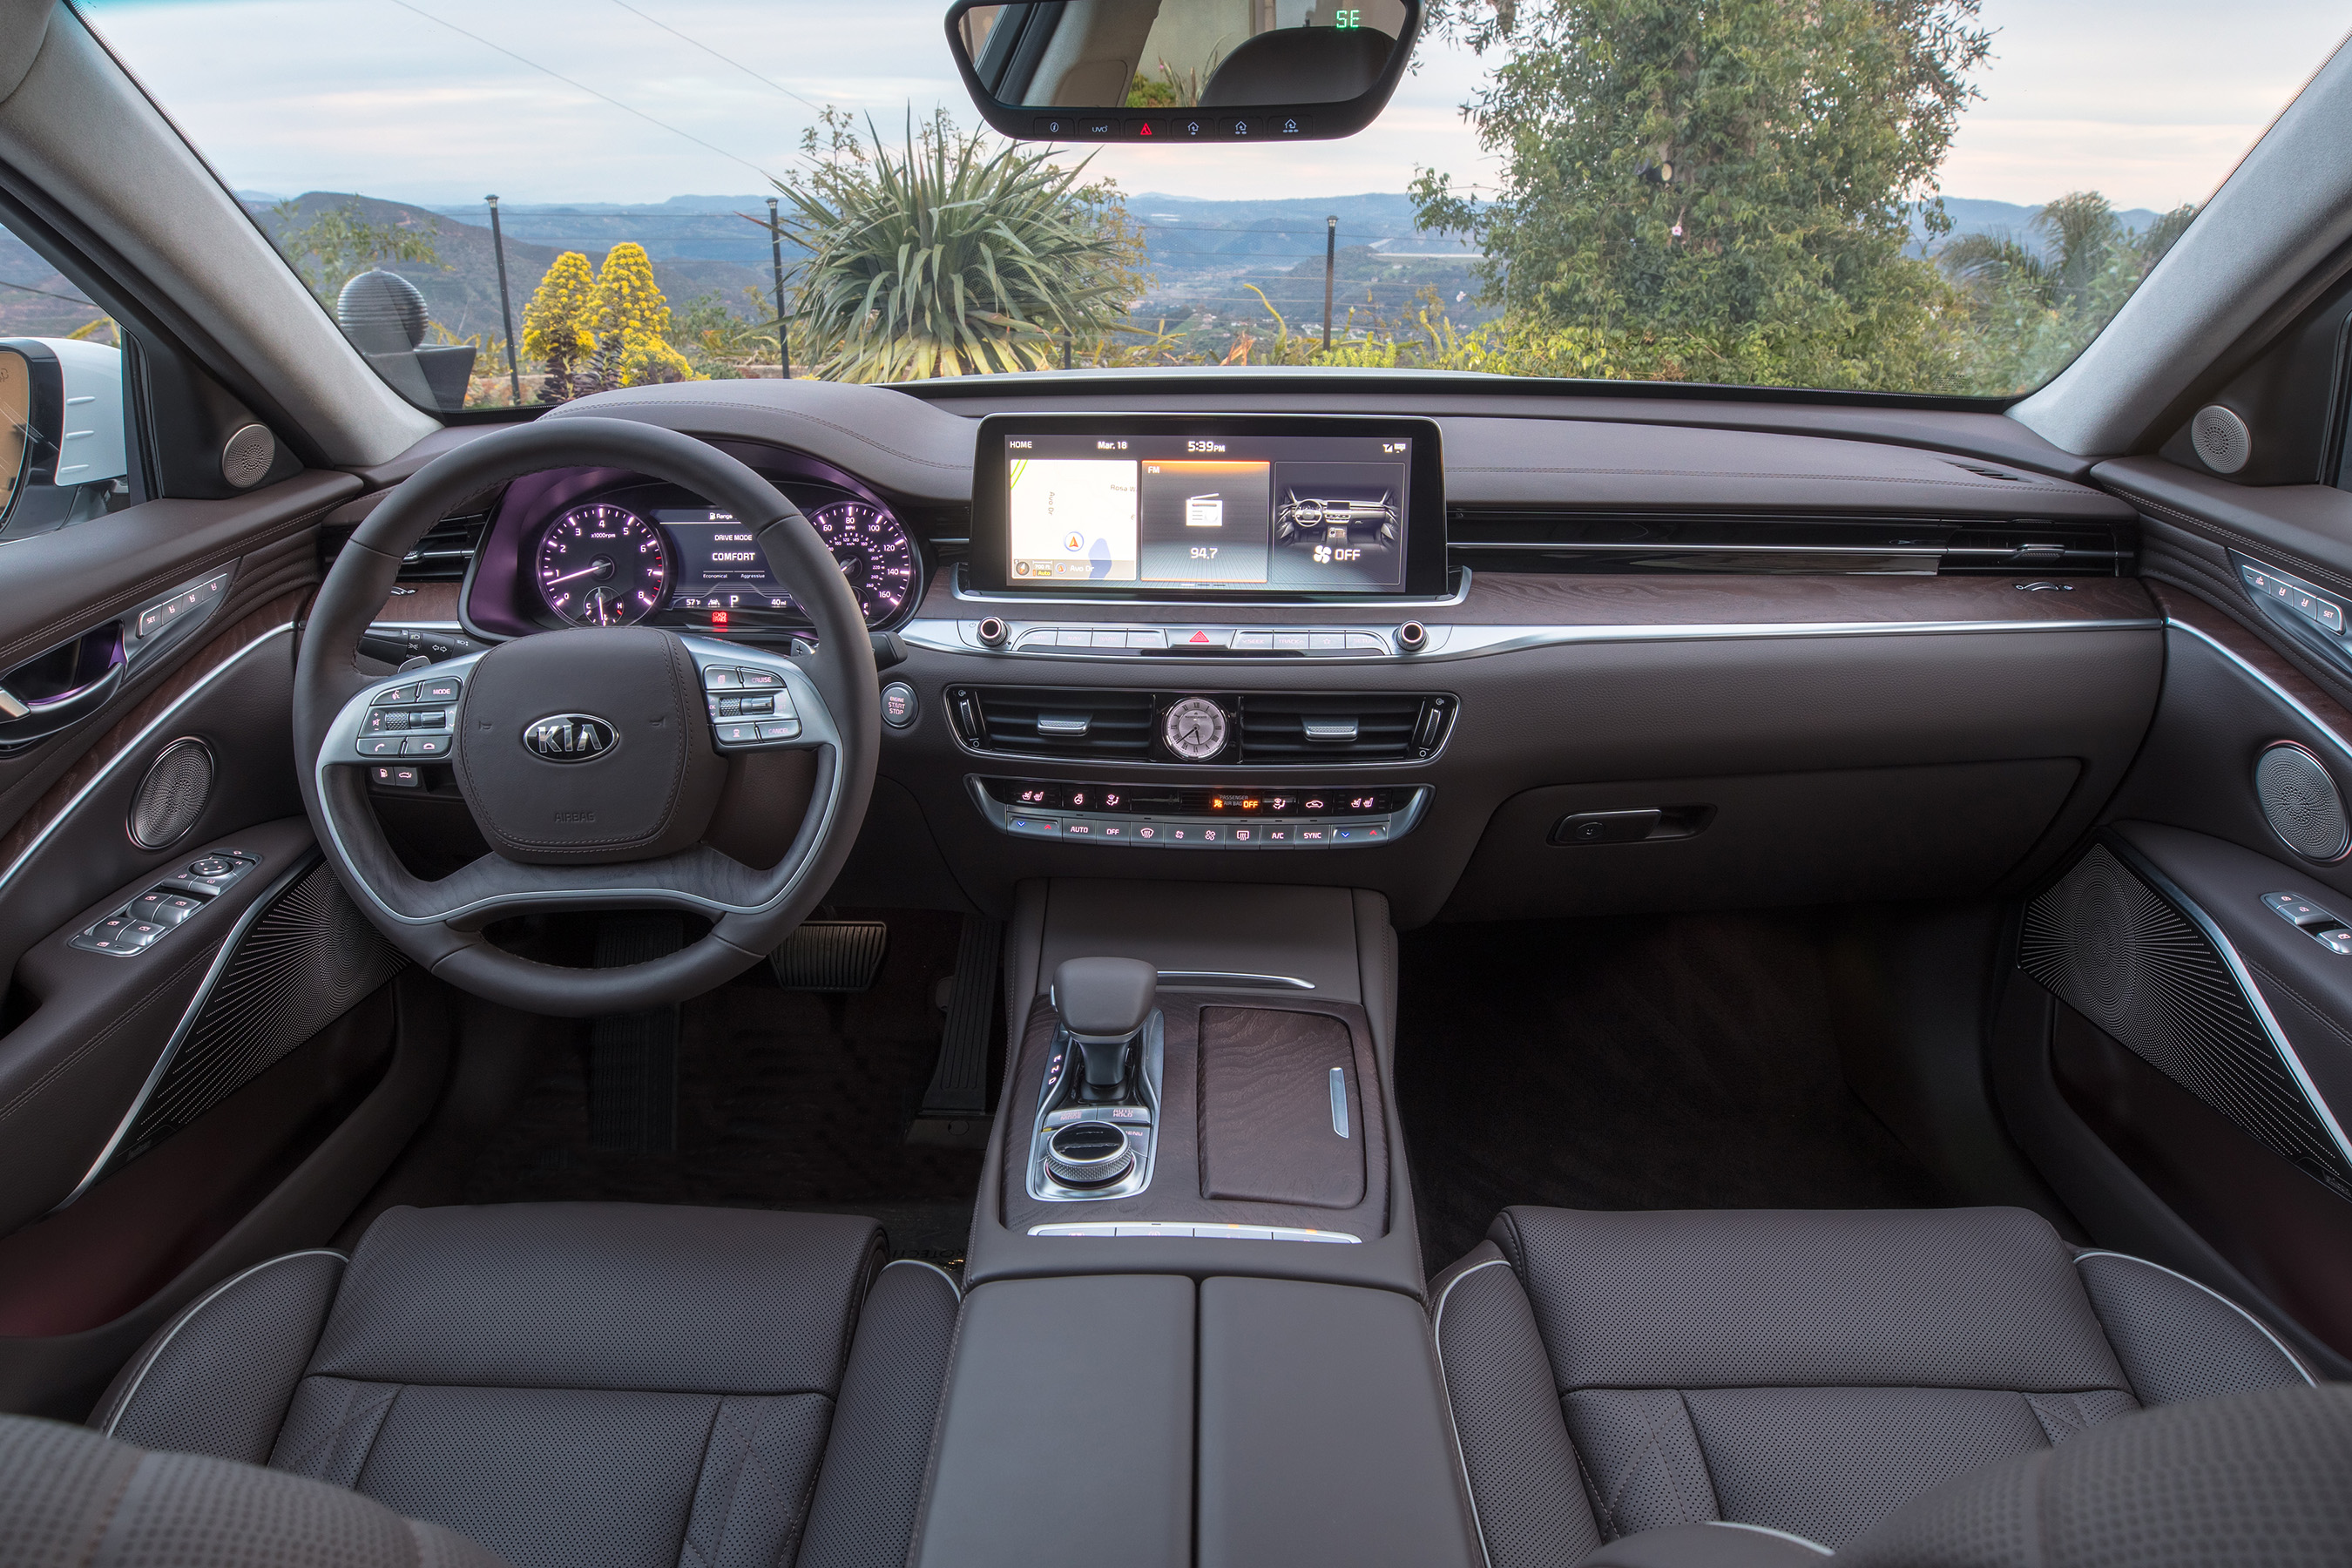 The all-new 2019 Kia K900 combines a dignified and sophisticated exterior design, a beautifully crafted cabin of premium materials, and performance characteristics that befit a world-class flagship sedan.